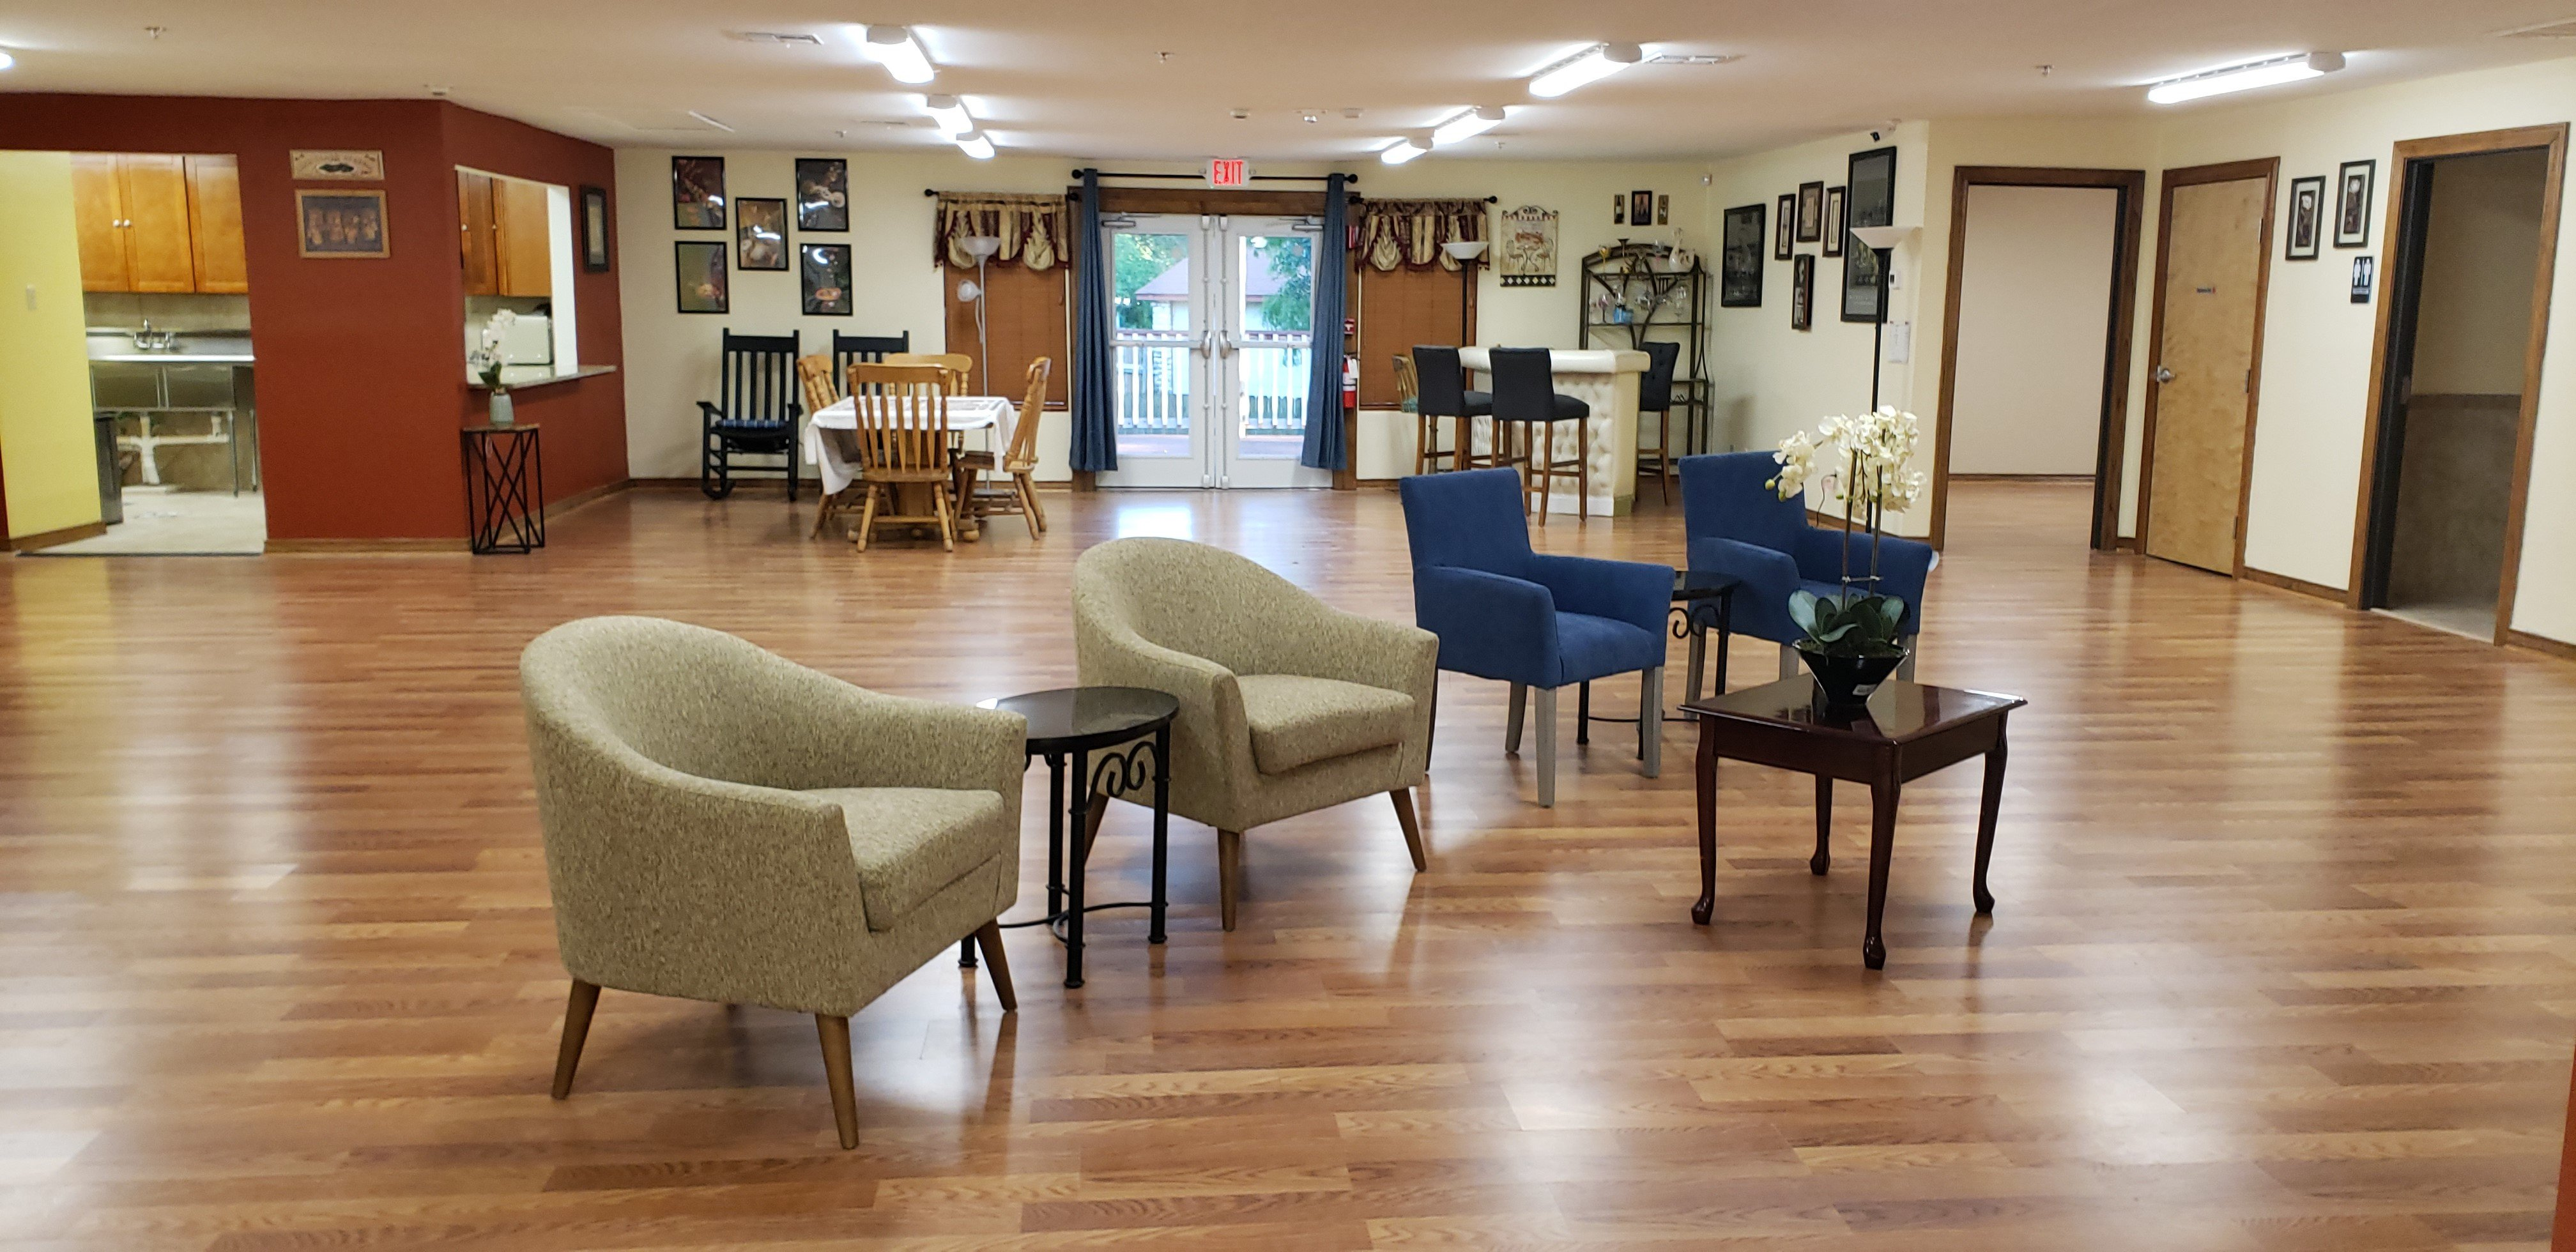 Senior Home Living Area 2